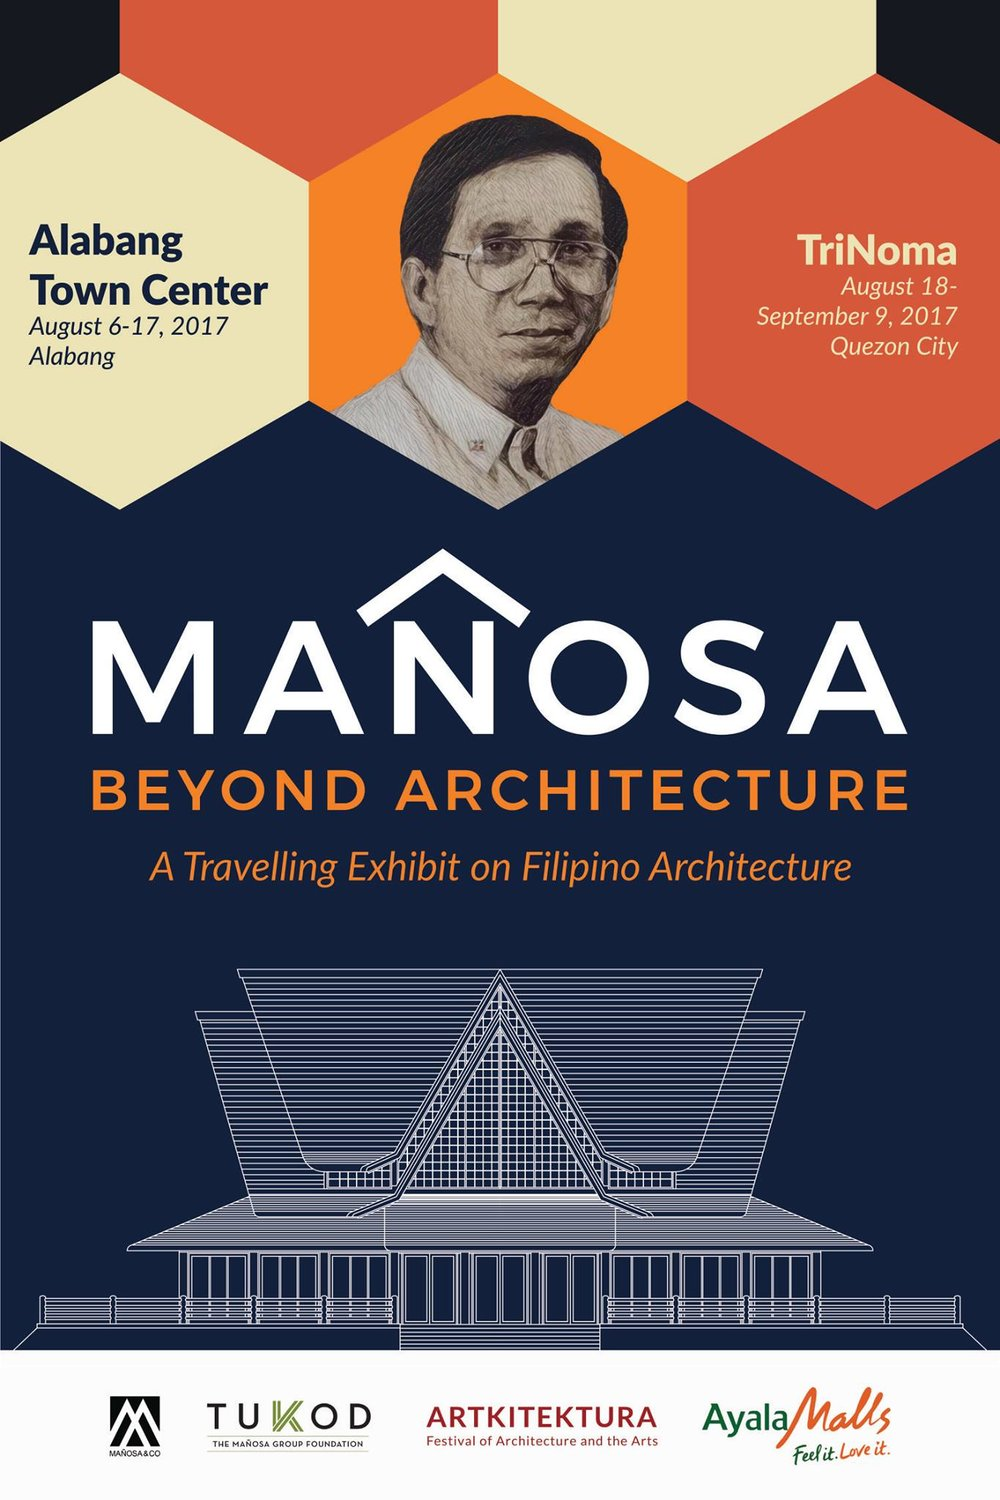 Manosa exhibit